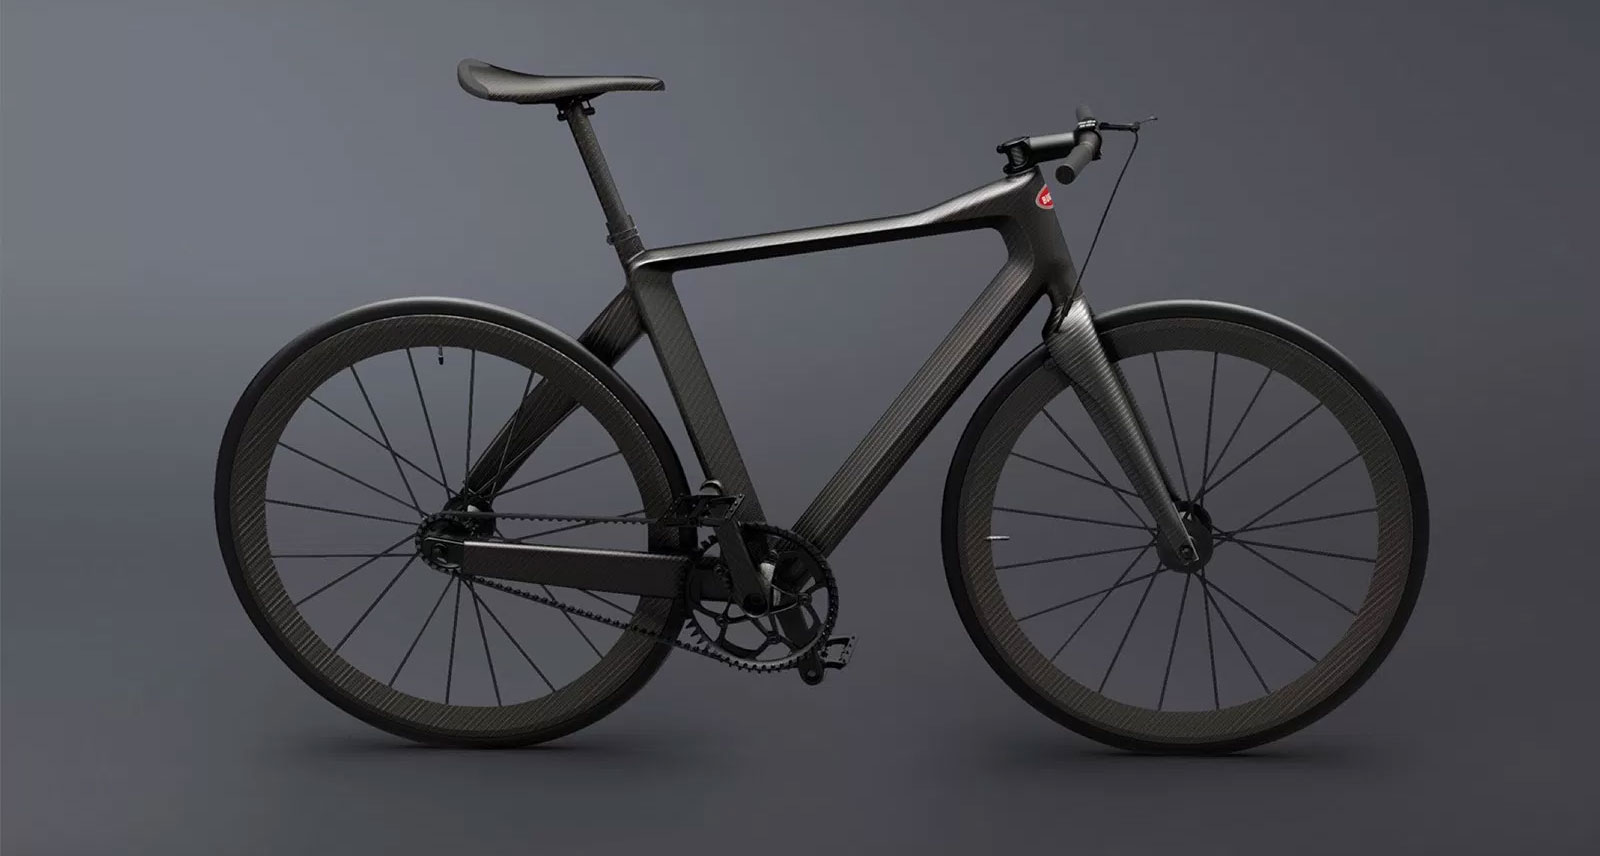 Bugatti's Beautiful New Road Bike Weighs Less Than 5 Kilograms